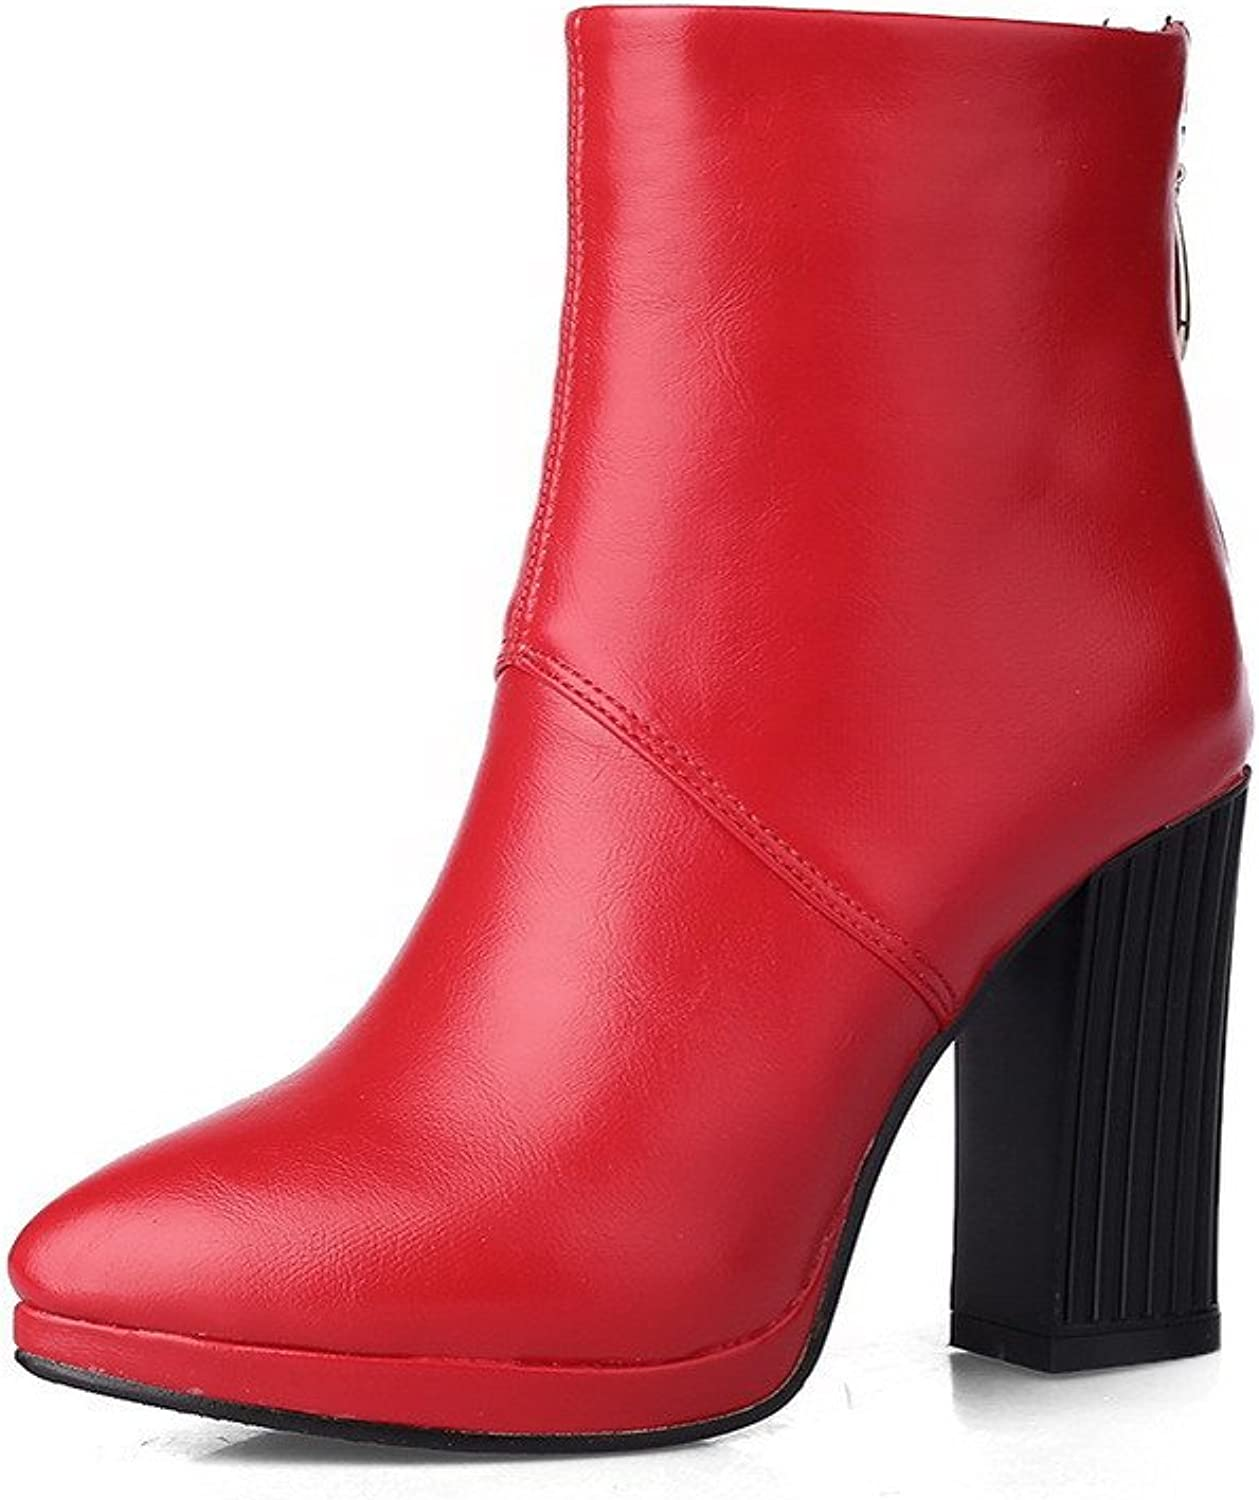 WeenFashion Women's Pointed Closed Toe Solid Low Top High Heels Boots